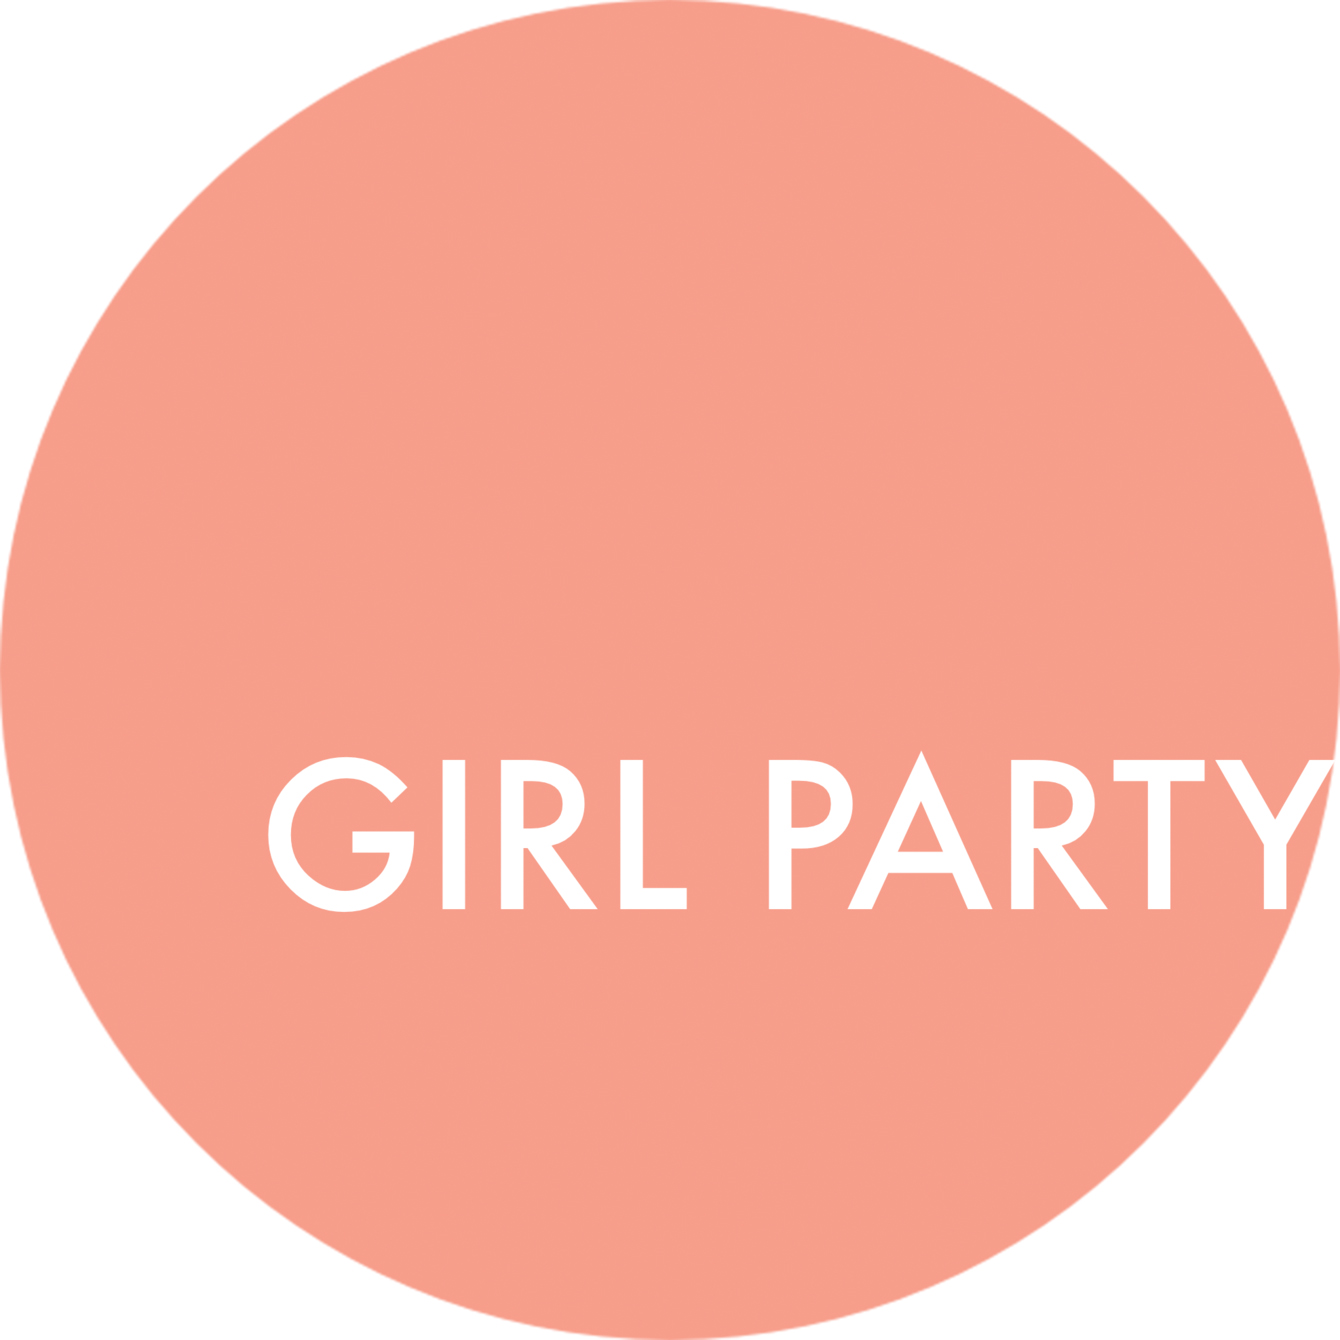 Girl Party